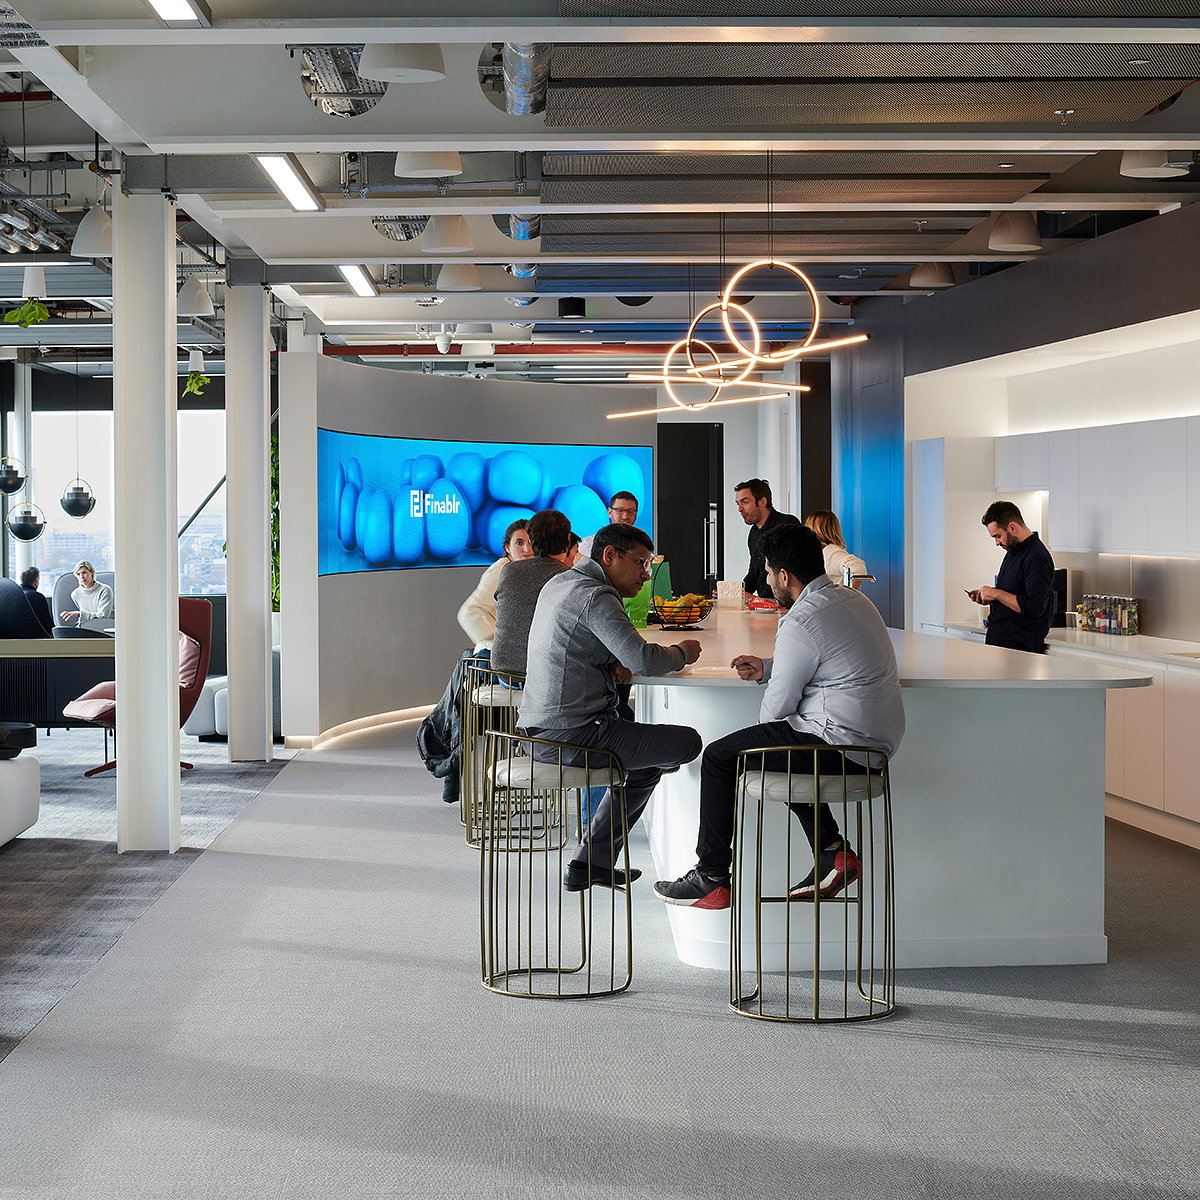 M Moser Designs Finablr's New Workplace to Accelerate Fintech Innovation